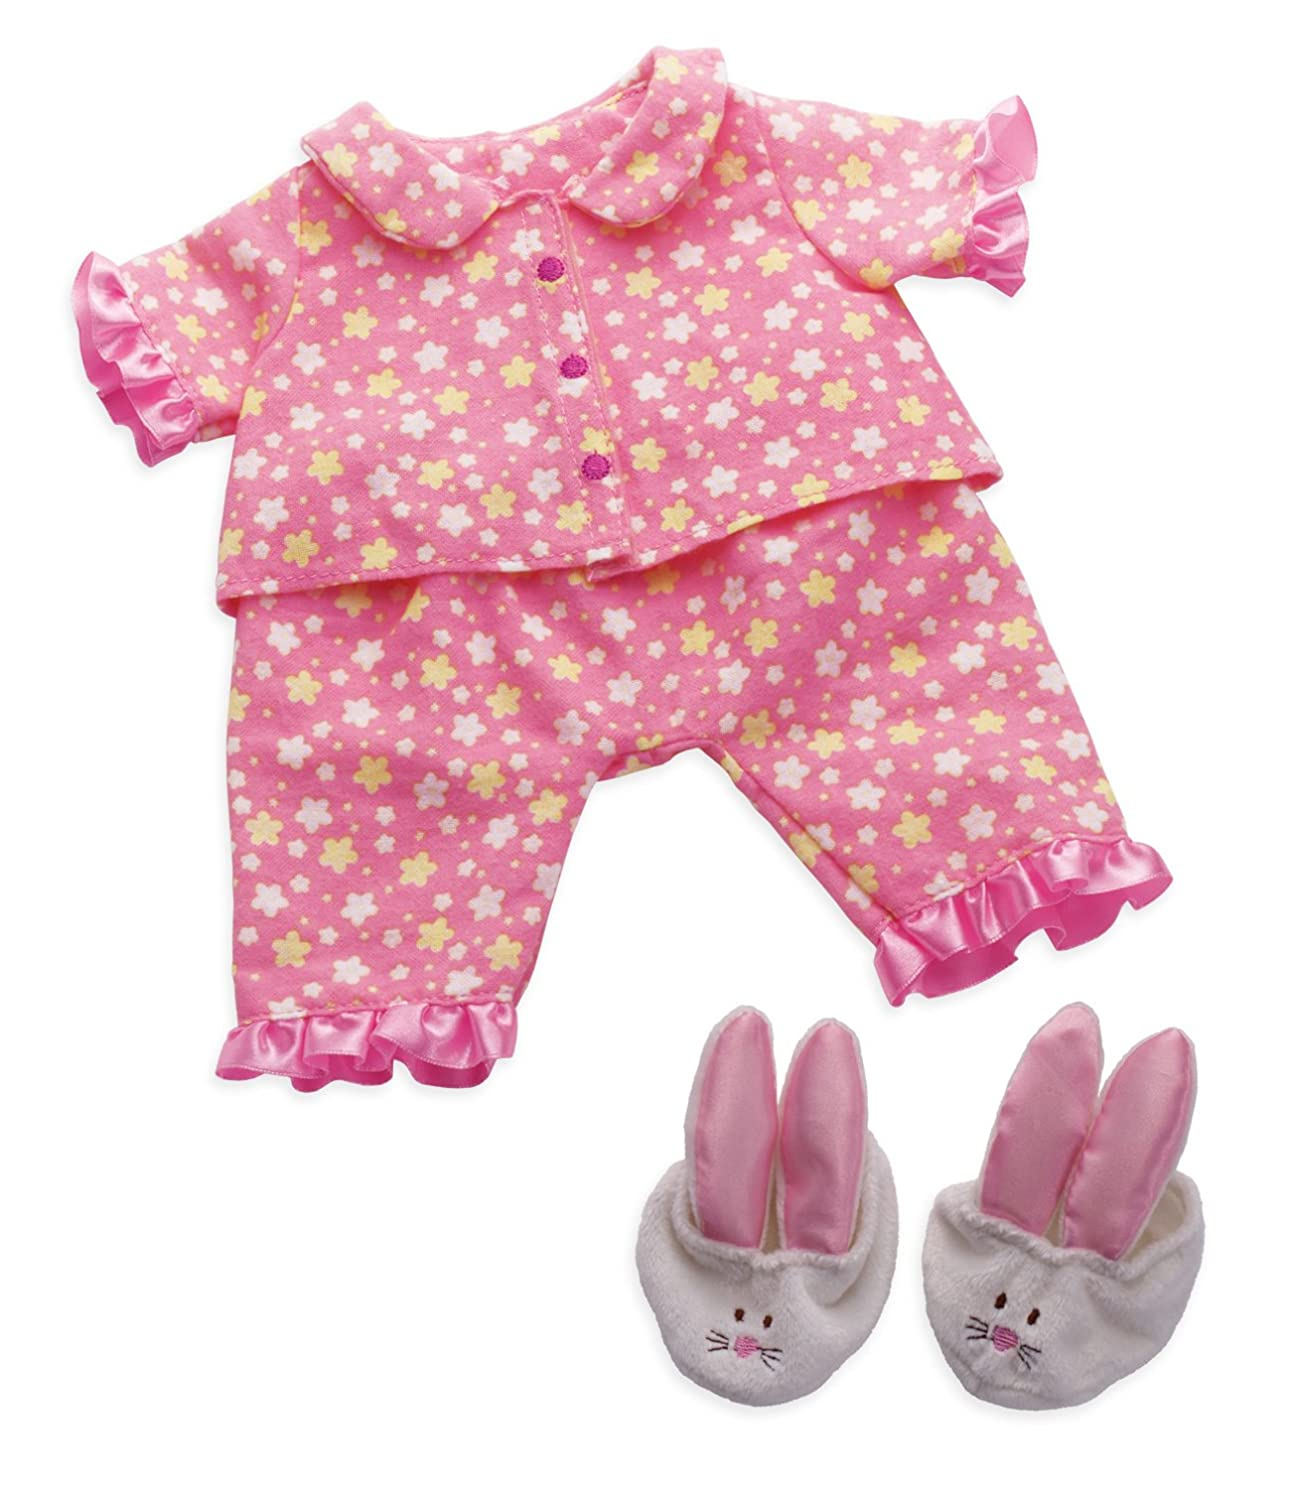 Amazon Manhattan Toy Baby Stella Goodnight Pajama Baby Doll